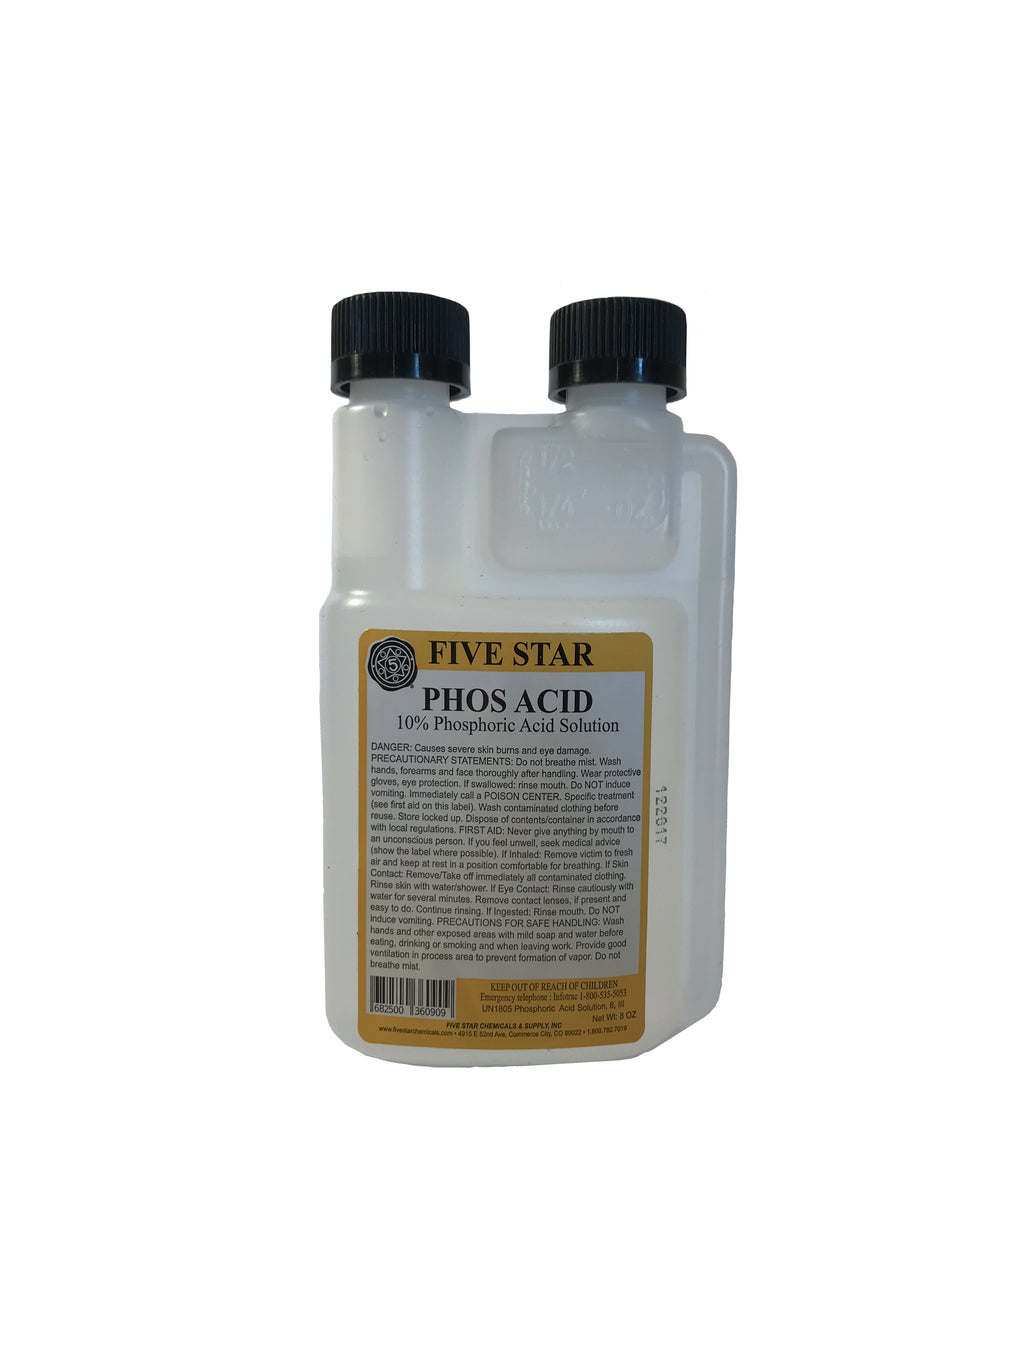 Phosphoric Acid 10% - Five Star